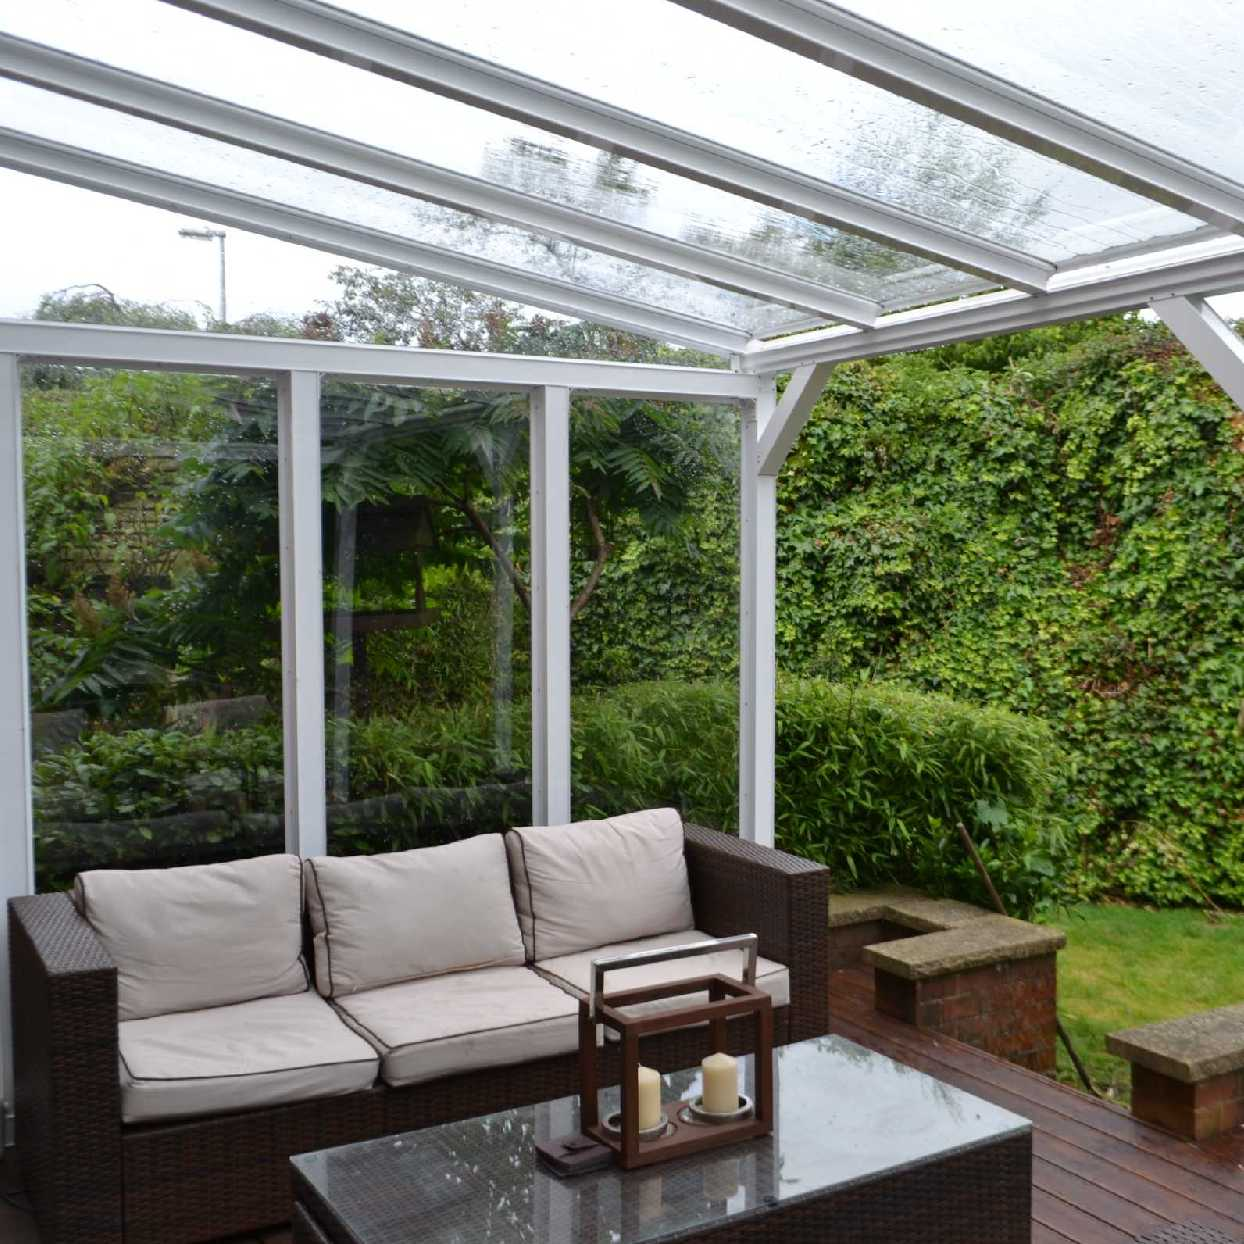 Great selection of Omega Smart White Lean-To Canopy with 16mm Polycarbonate Glazing - 6.0m (W) x 3.0m (P), (3) Supporting Posts